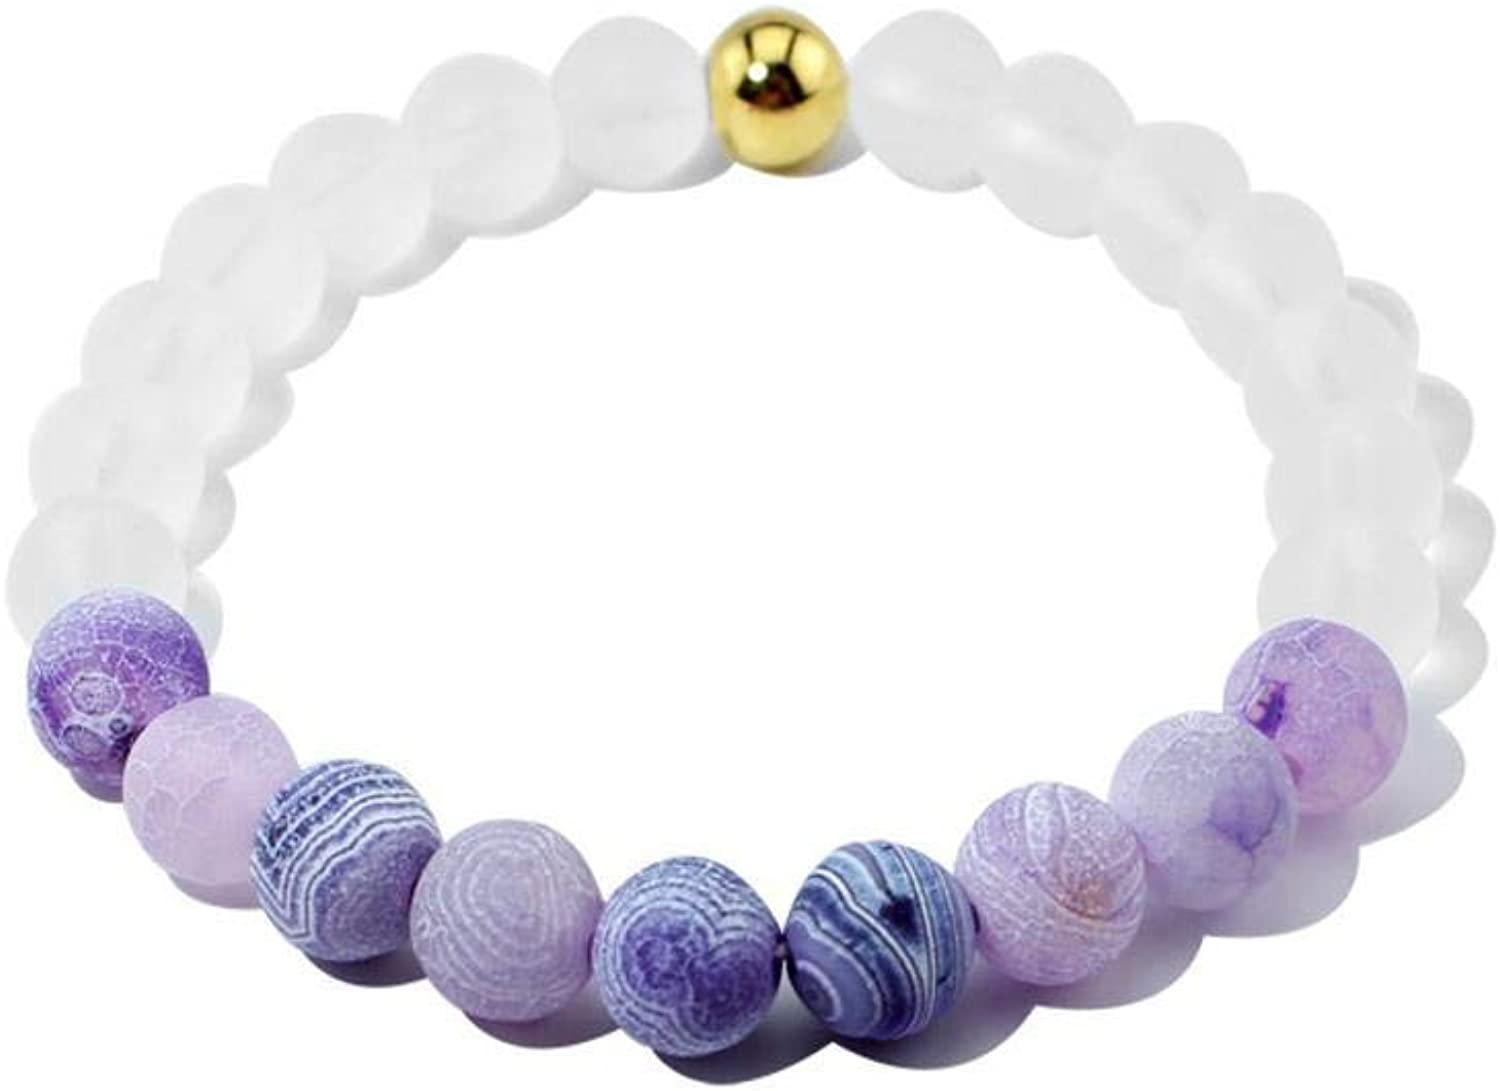 Zicue Stylish Charming Bracelet Exquisite Ornaments Natural Stone agate Bead elastic bracelet lady Fashion Gift ( color   A )